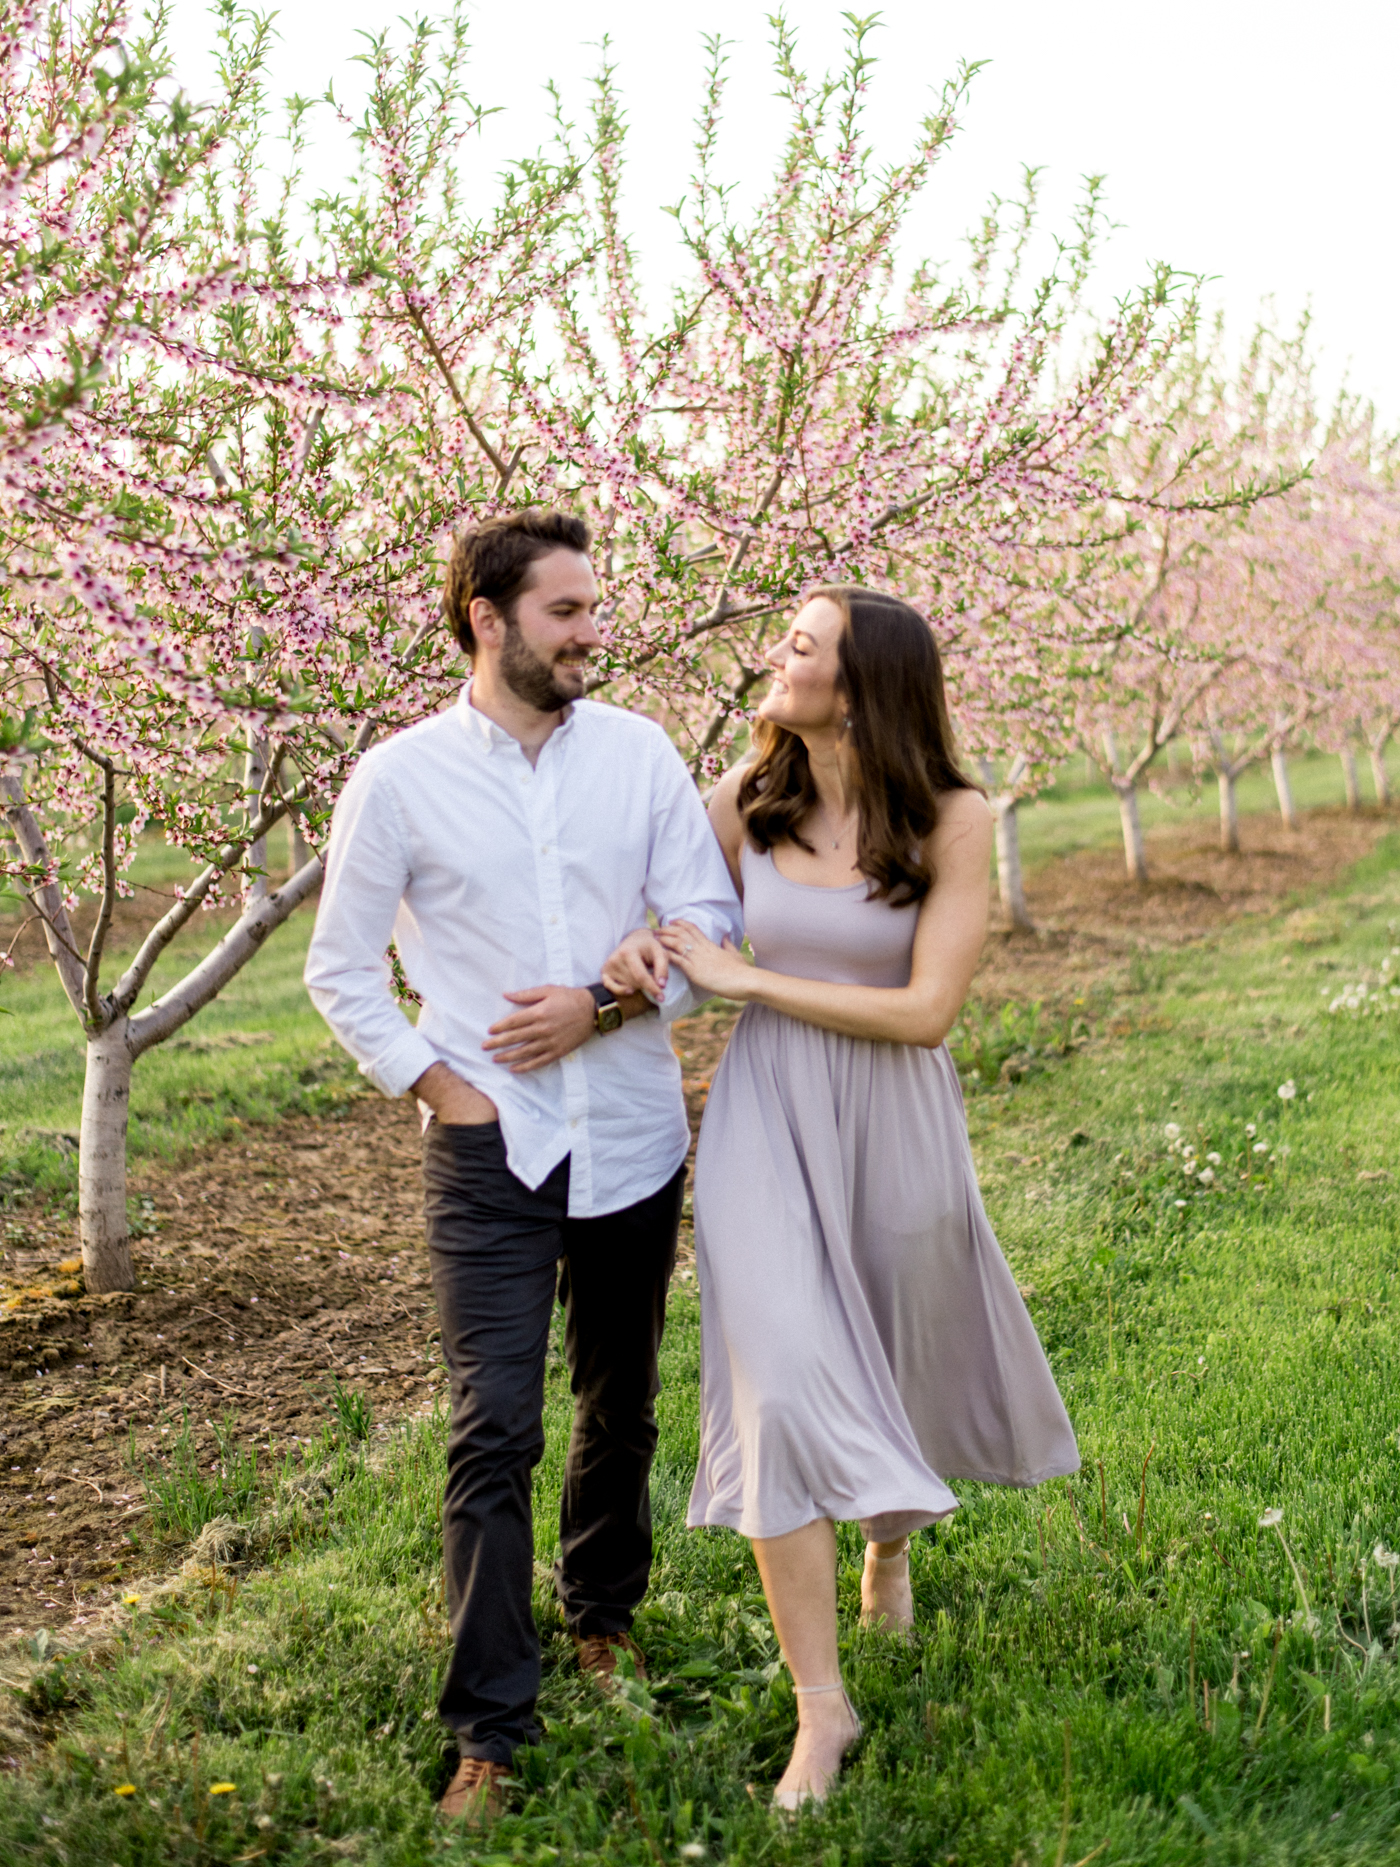 Chris & Heather's Engagement Session in Vineland Ontario Spring Blossoms Trees by Hush Hush Photography & Film Aidan Hennebry - 3.jpg